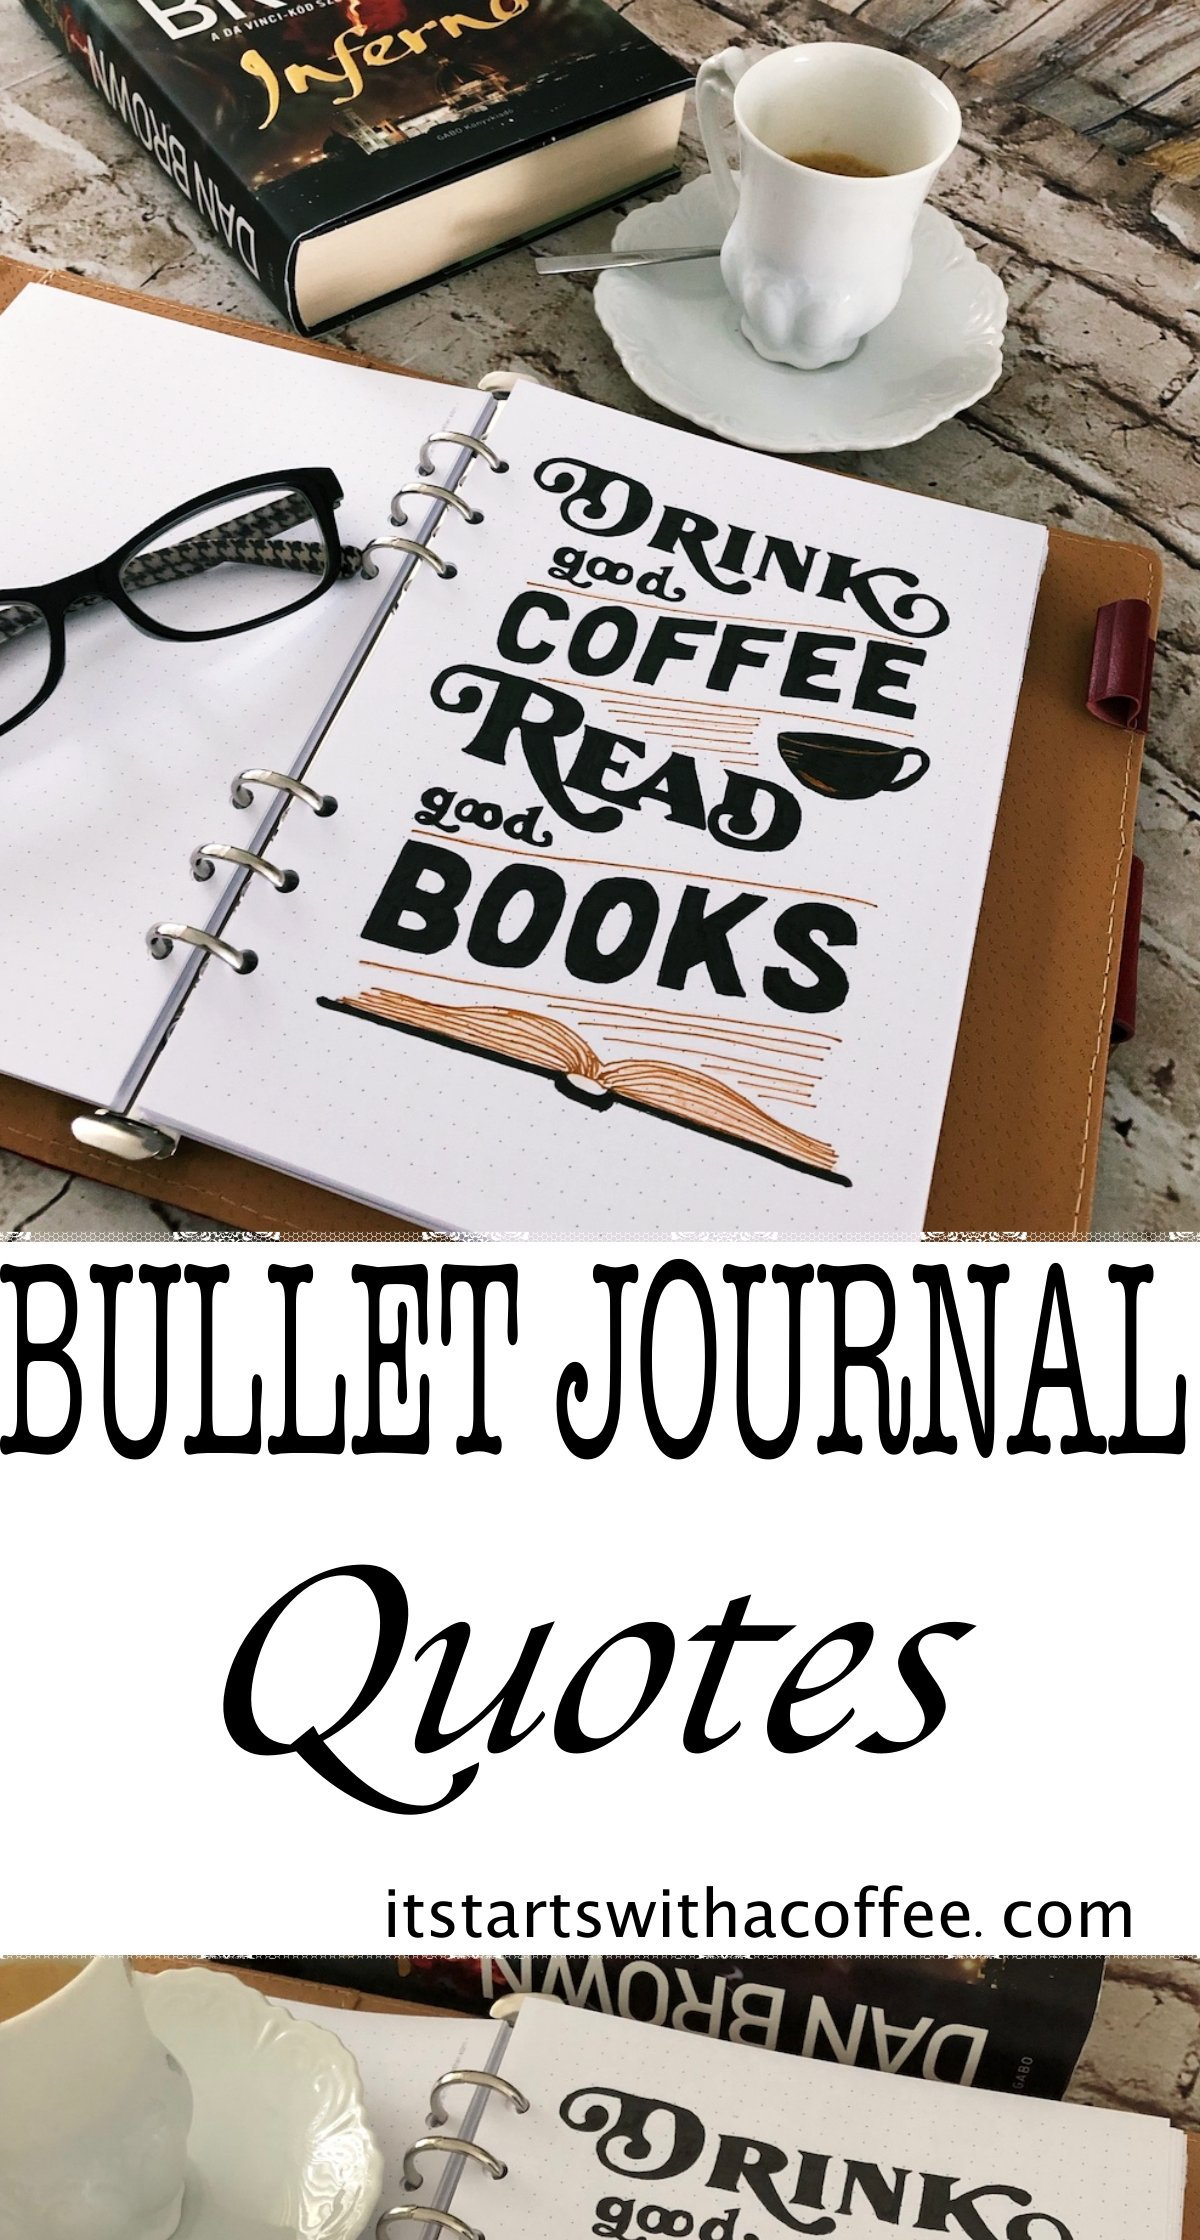 Bullet journal quotes - itstartswithacoffee.com #bulletjournal #quotes #bulletjournaling #lettering #coffee #books